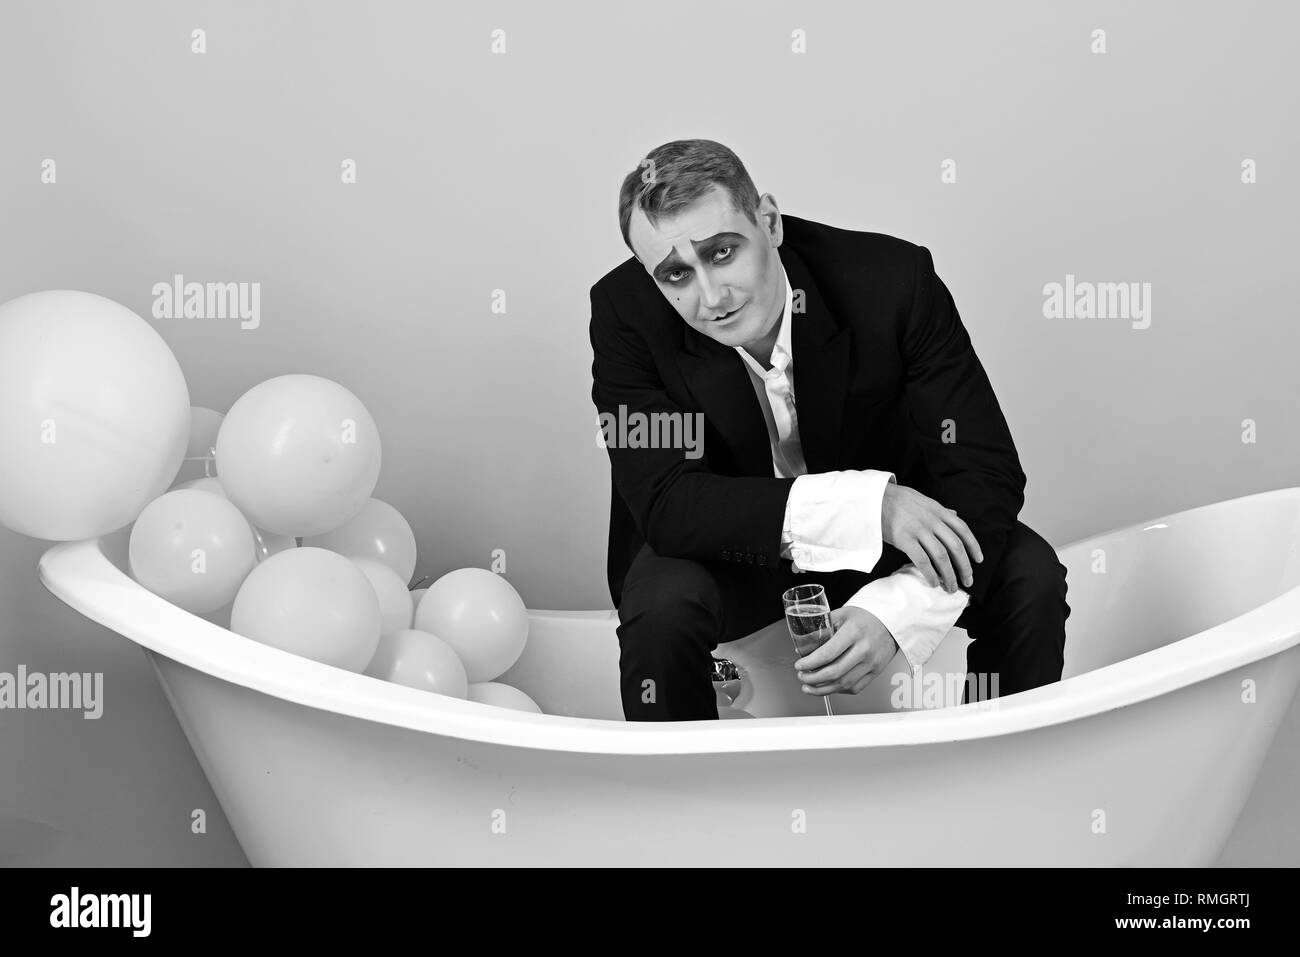 No celebration is complete without bubbly. Comedian actor enjoy theatre party celebrating. Mime man celebrate party in bath. Mime actor has - Stock Image